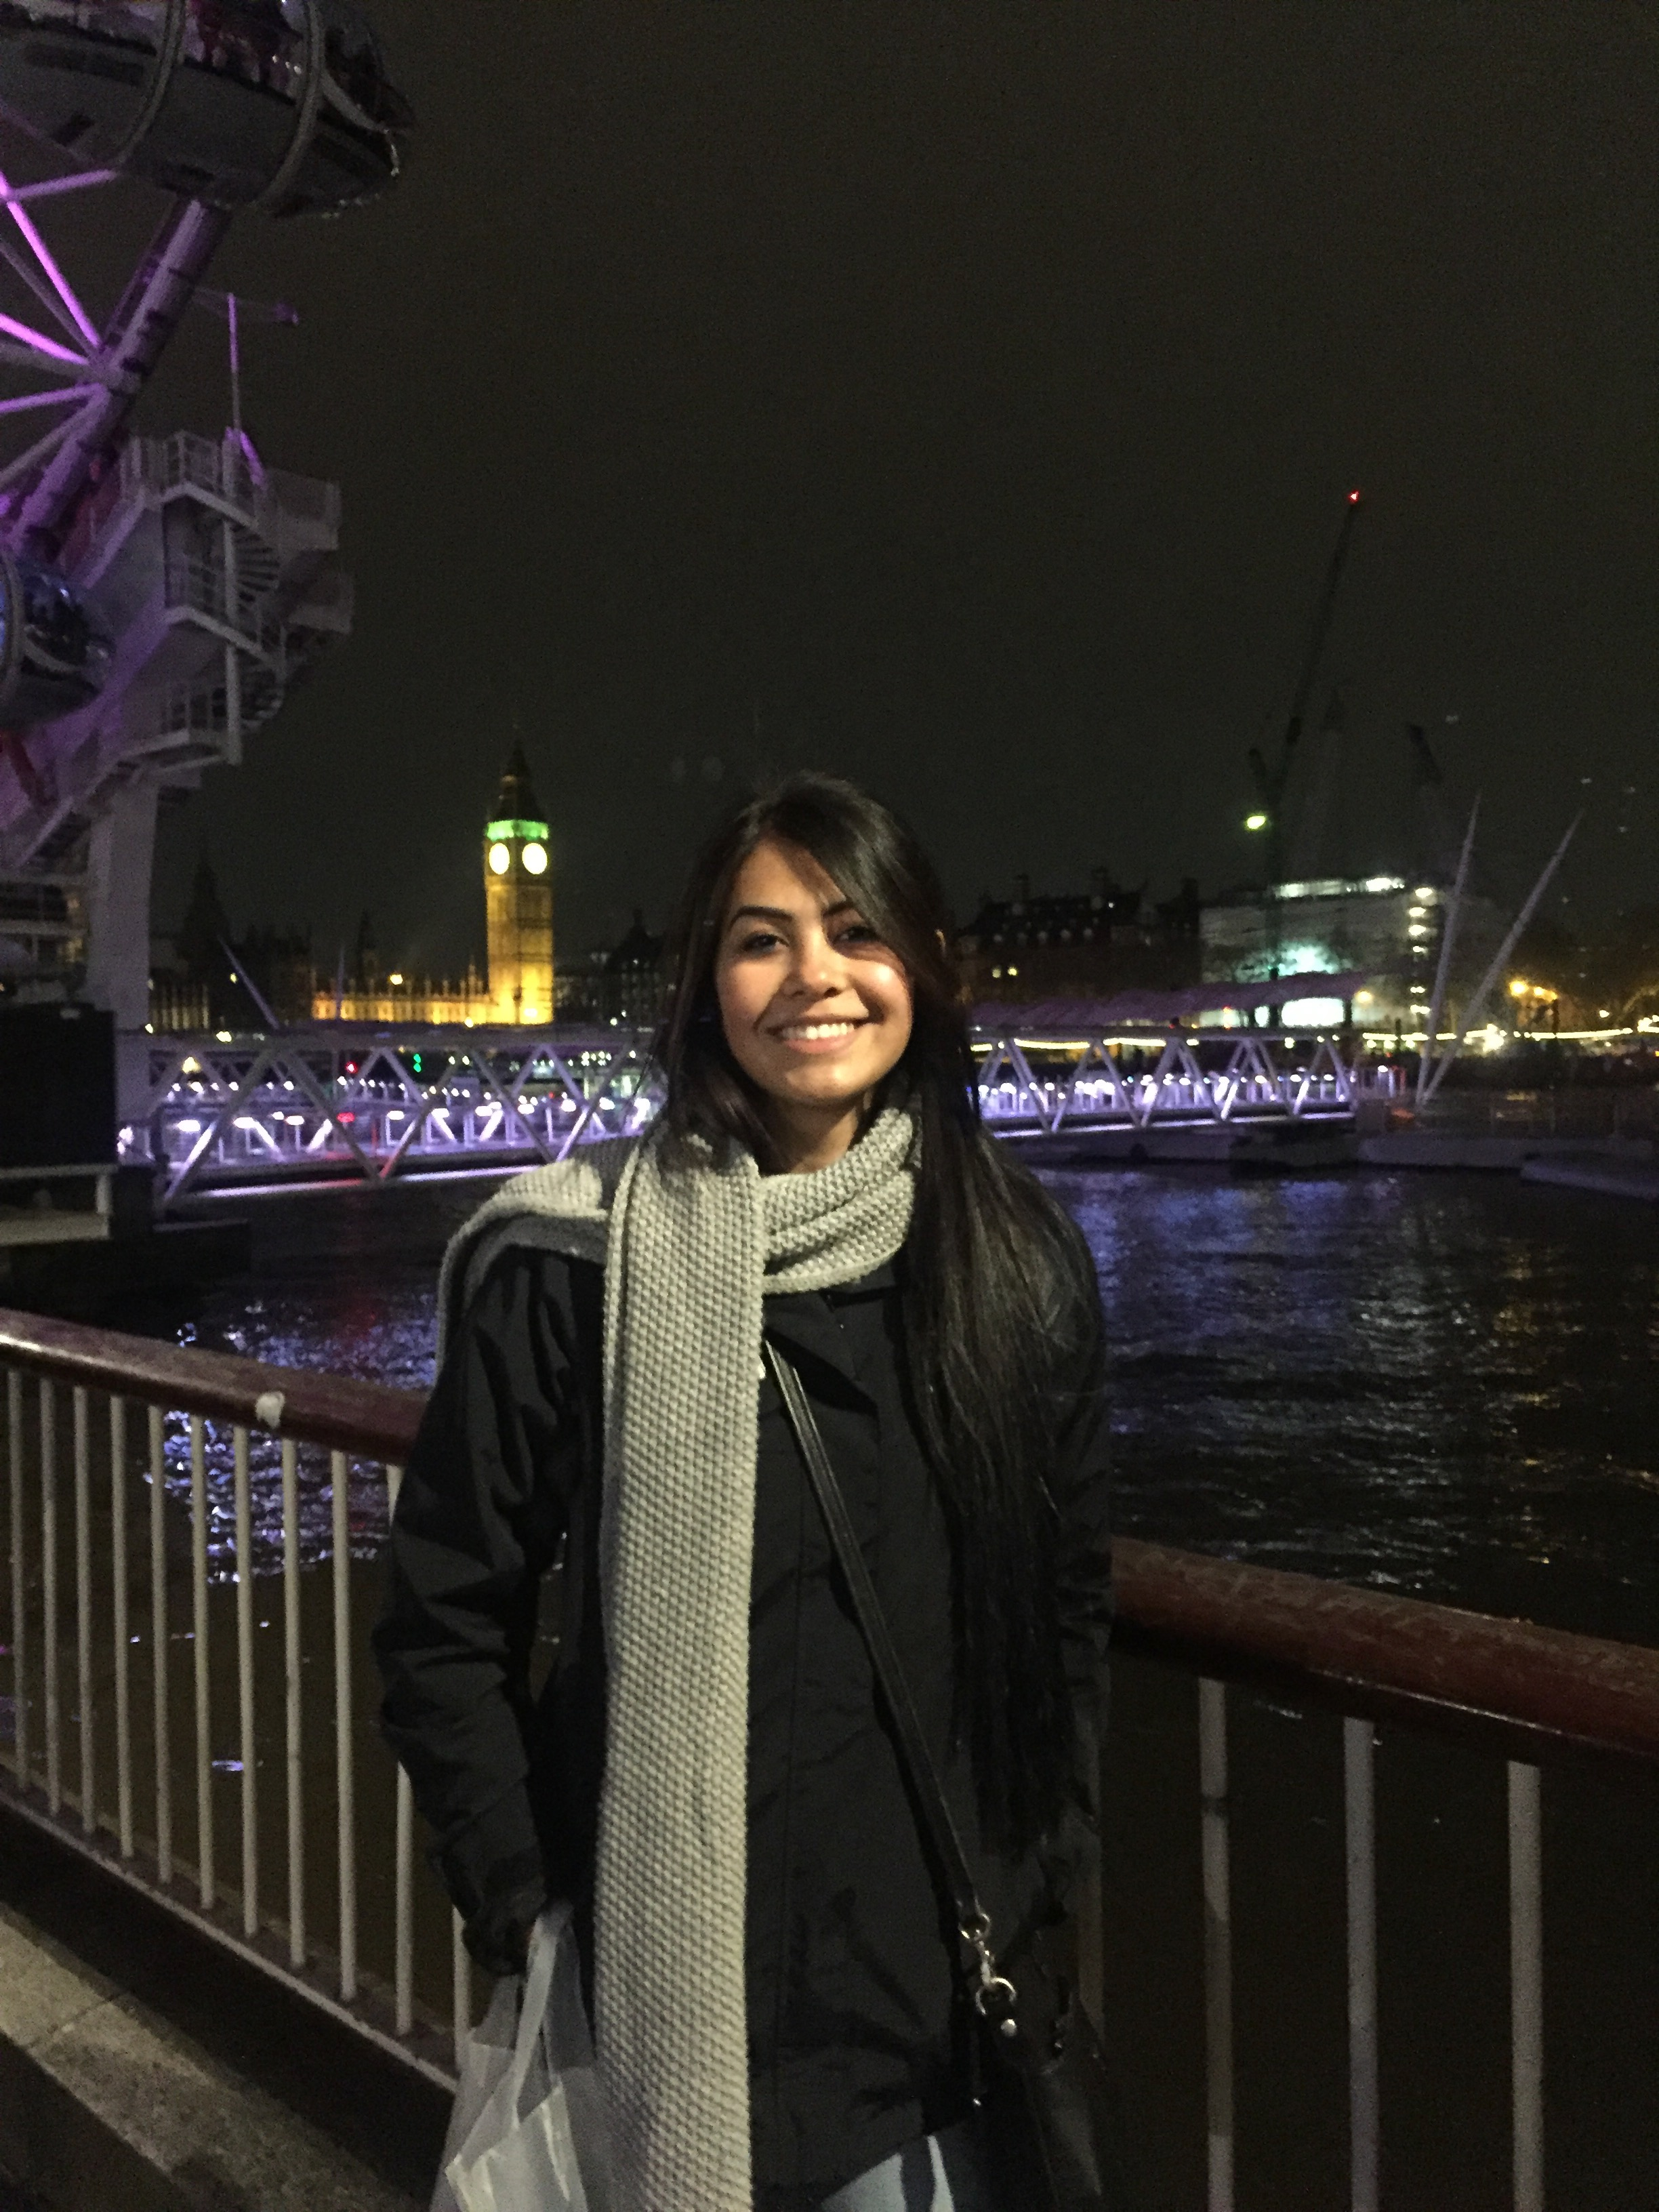 Ginger Mogel - Filipino American woman with long dark hair wearing a scarf on a bridge overlooking the river at night